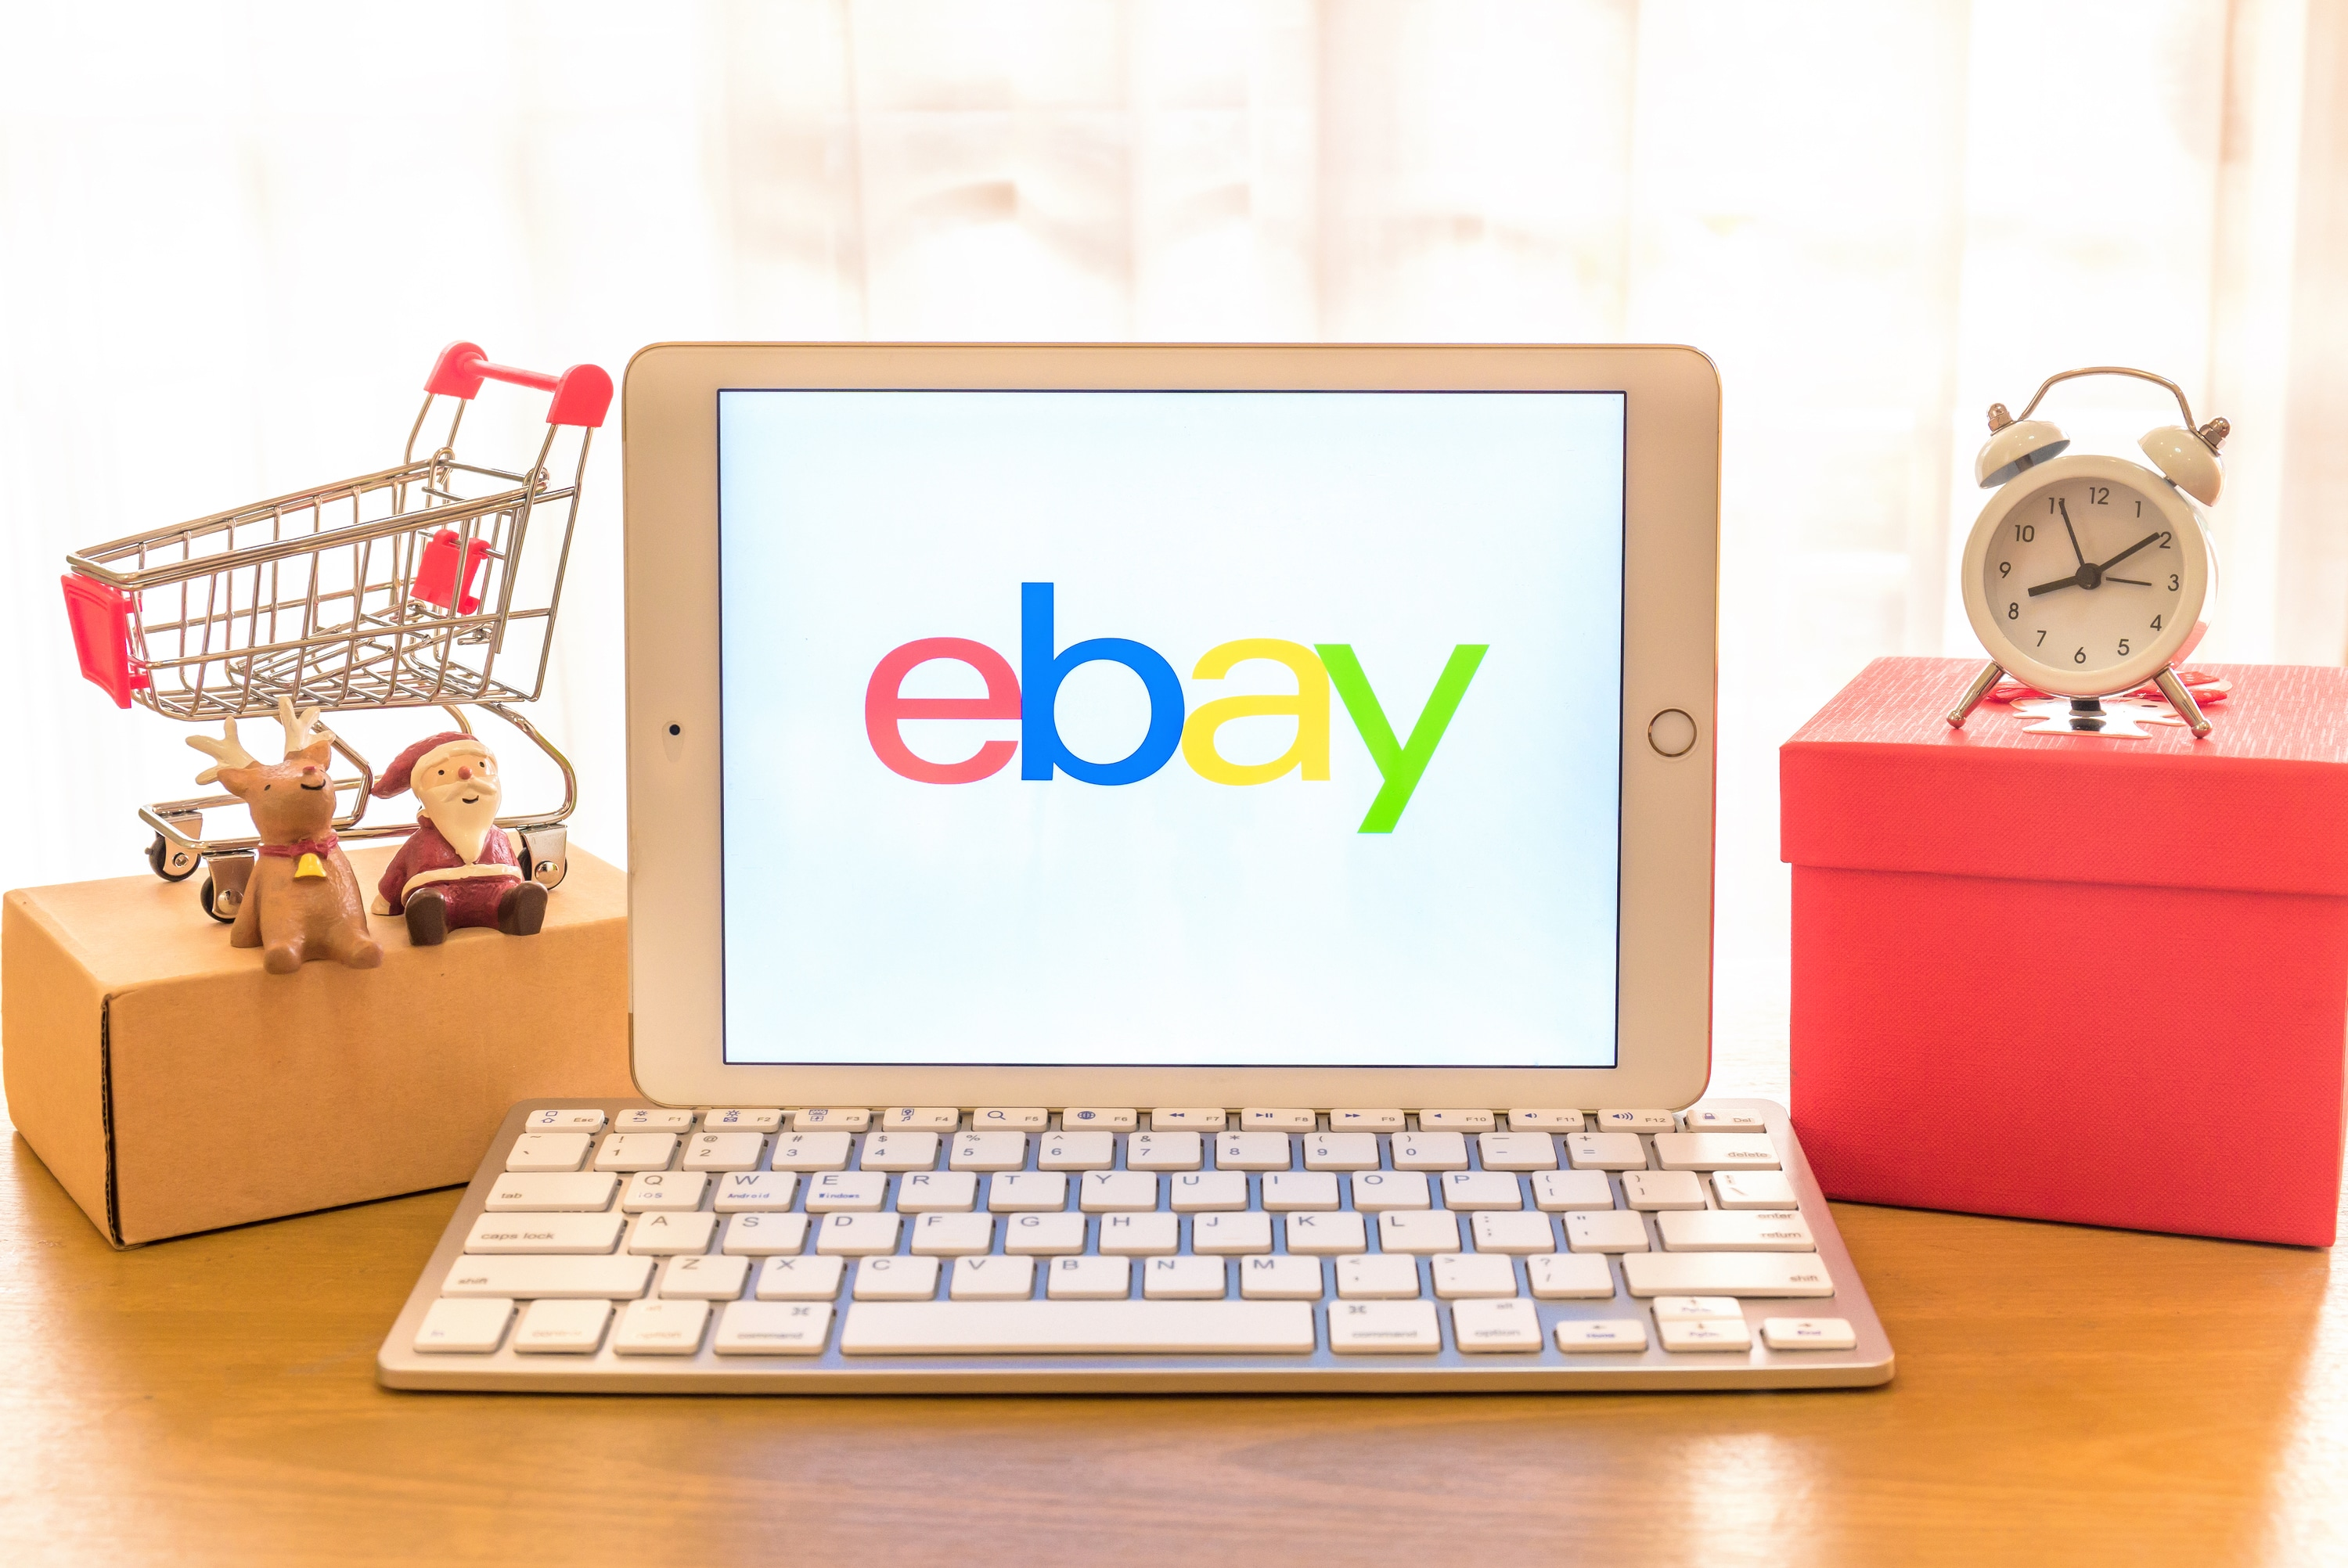 How to Use eBay to Sell - 12 eBay Selling Tips to Maximize